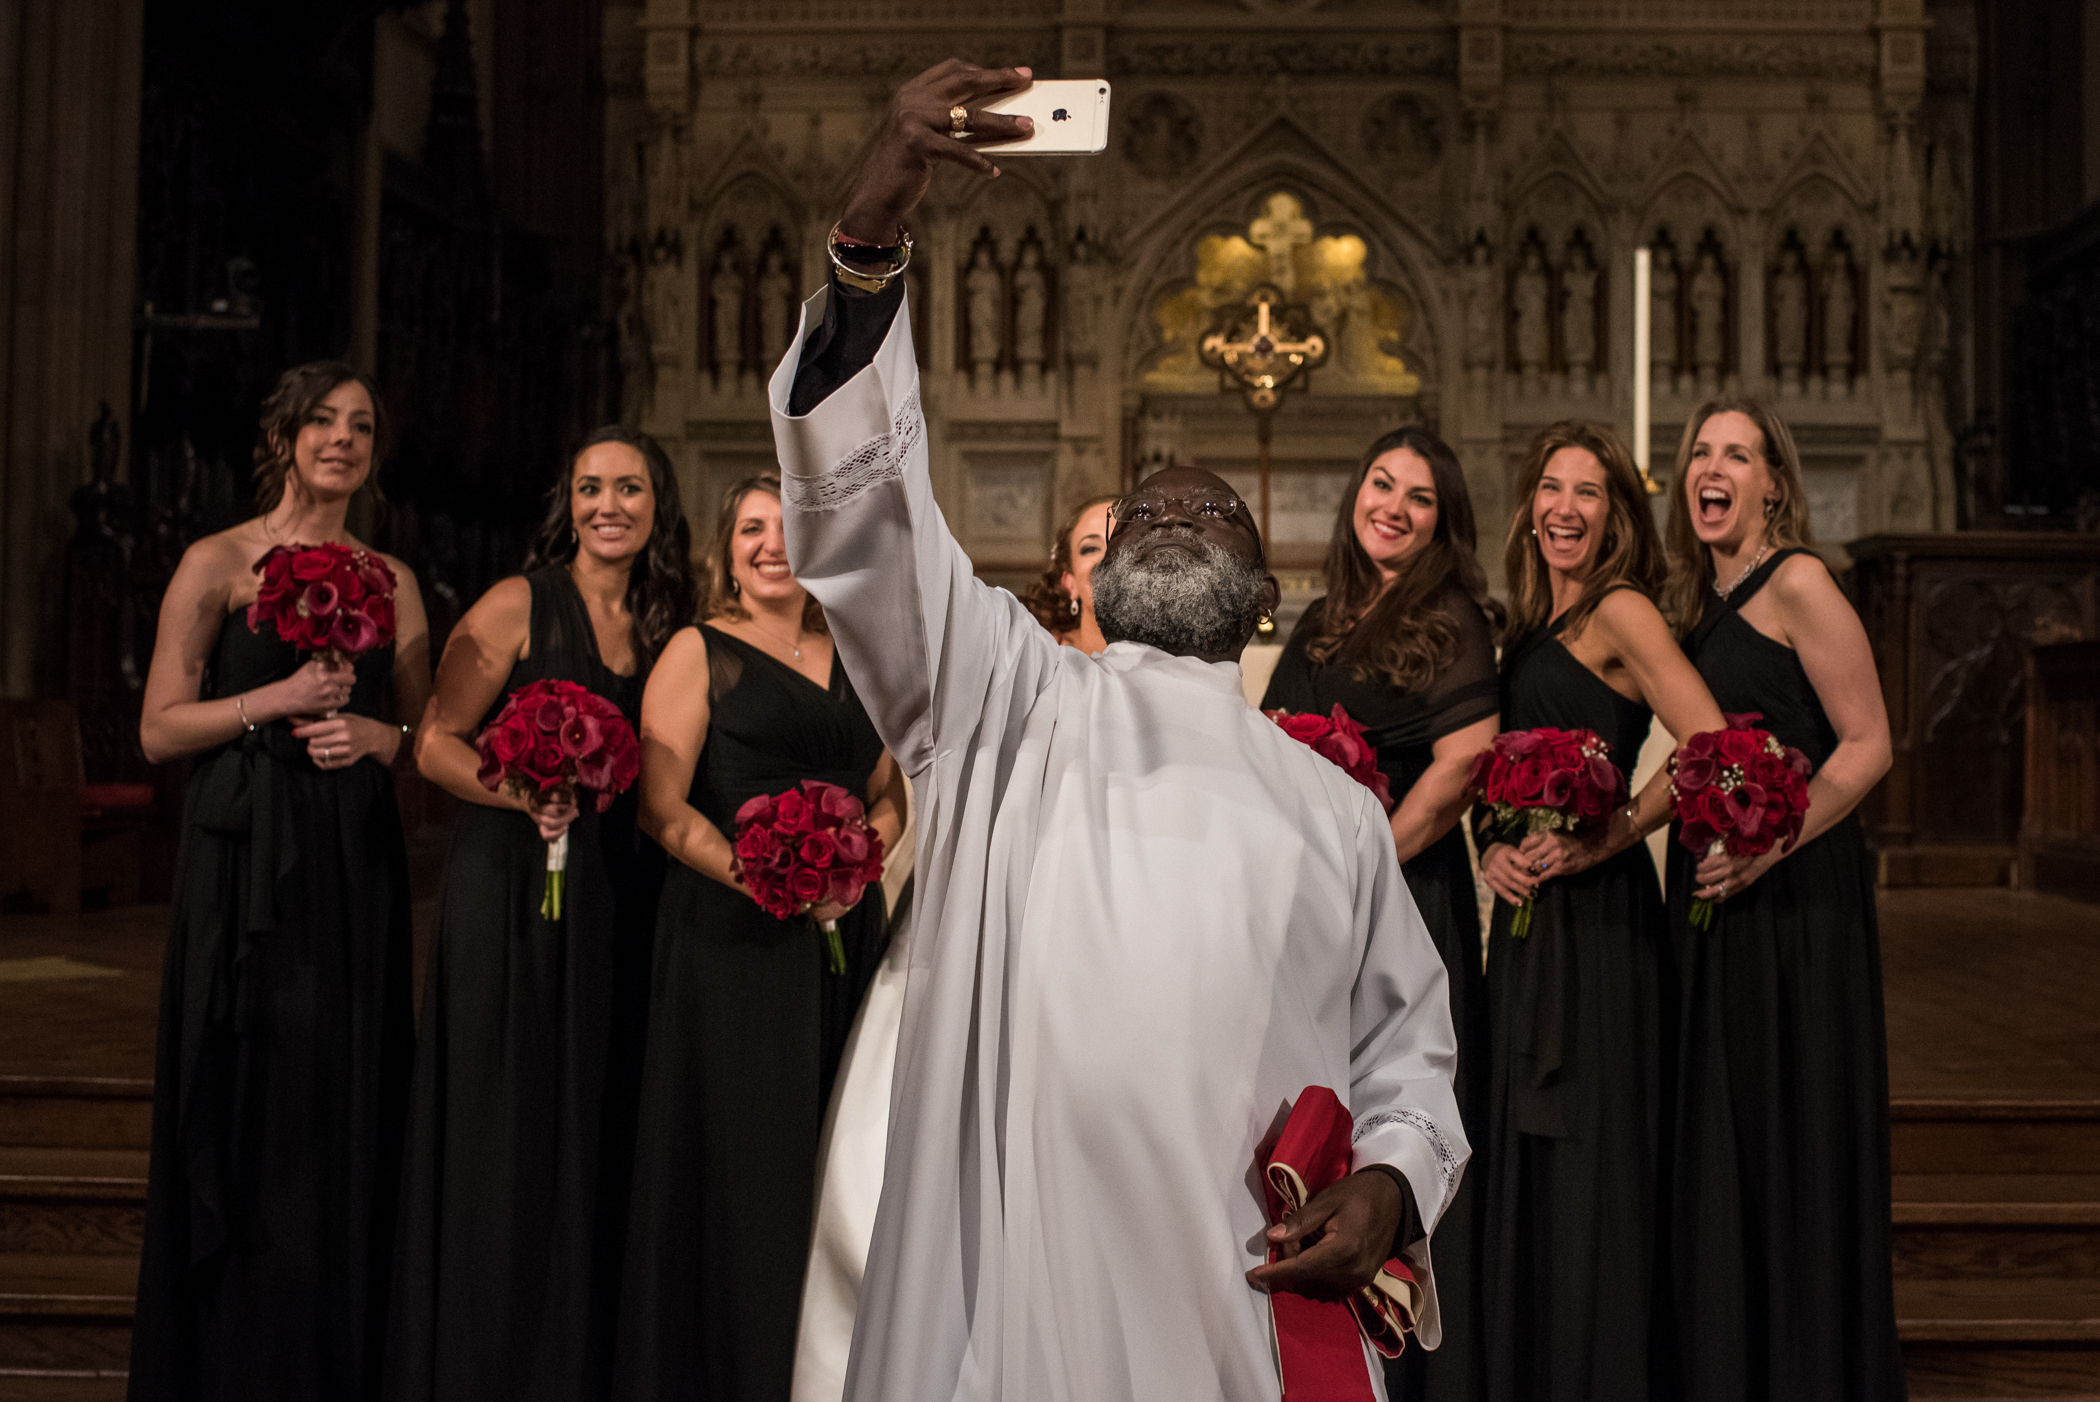 Stefy Hilmer Photography-priest jumping in front of the bridal party taking a selfie.jpg